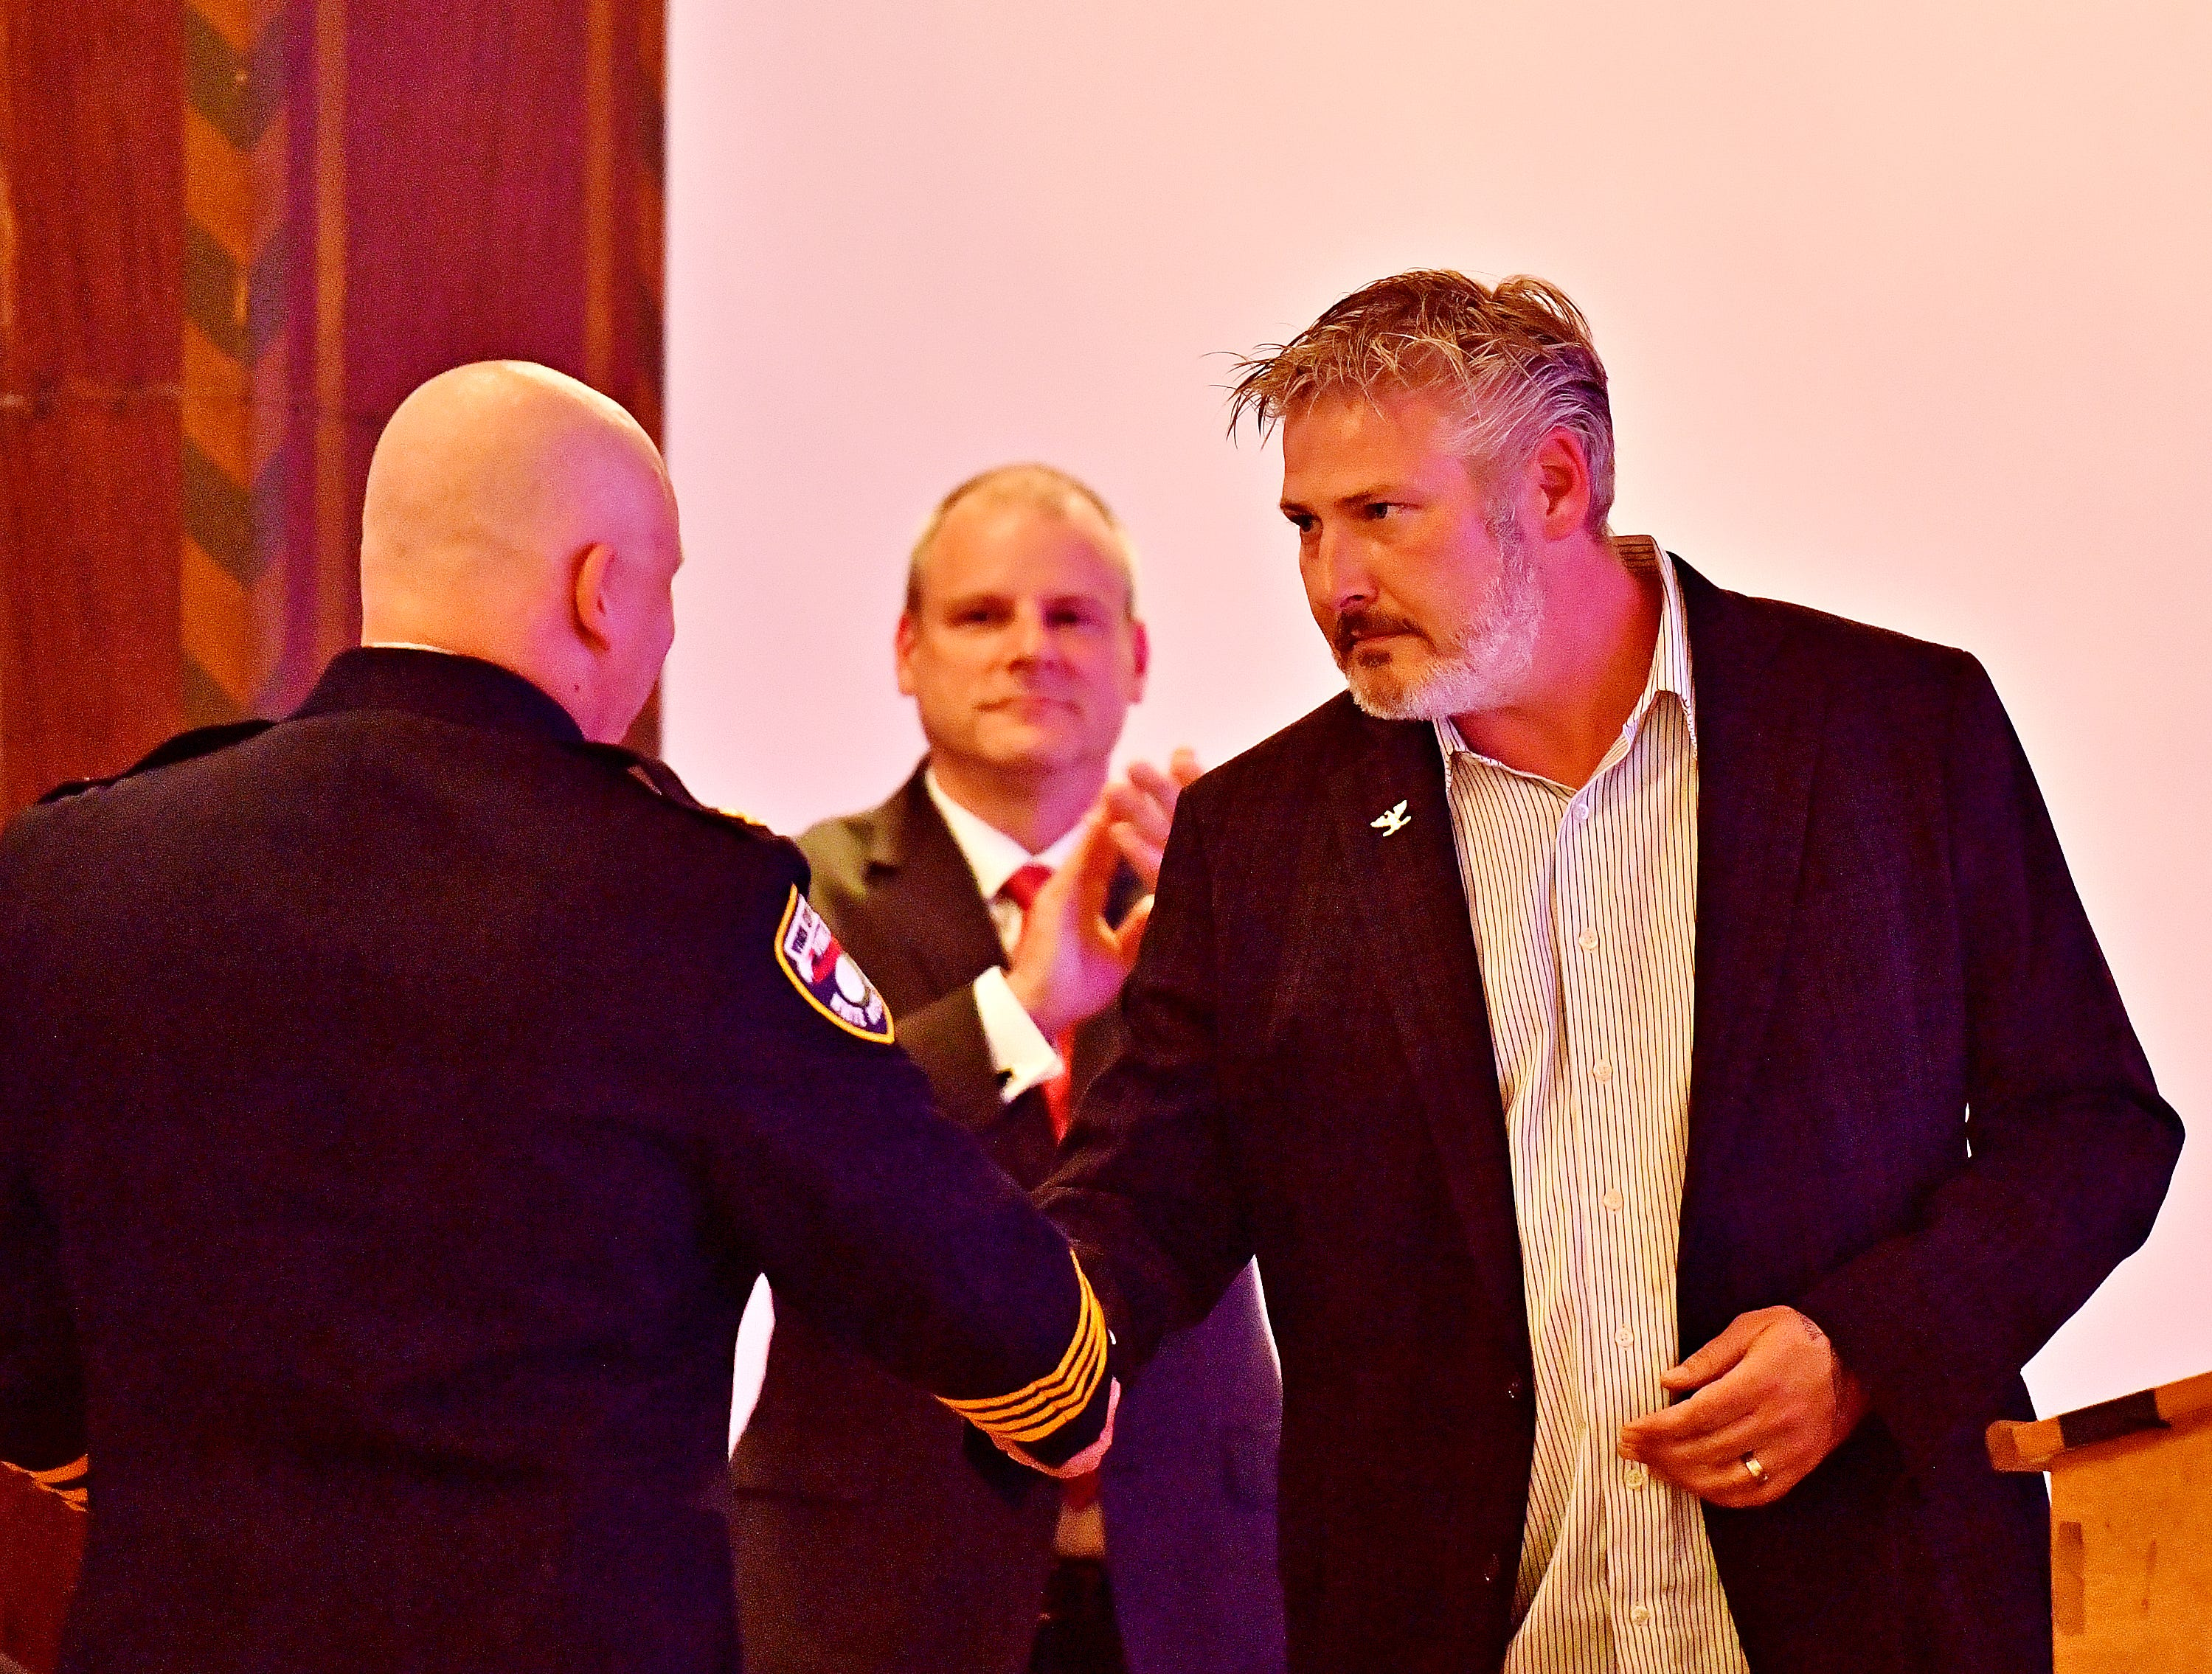 West York Borough Chief of Public Safety Matthew Millsaps commends York City Police Chief Troy Bankert during the York City Police Departmental Awards Ceremony at Valencia Ballroom in York City, Thursday, May 9, 2019. Dawn J. Sagert photo